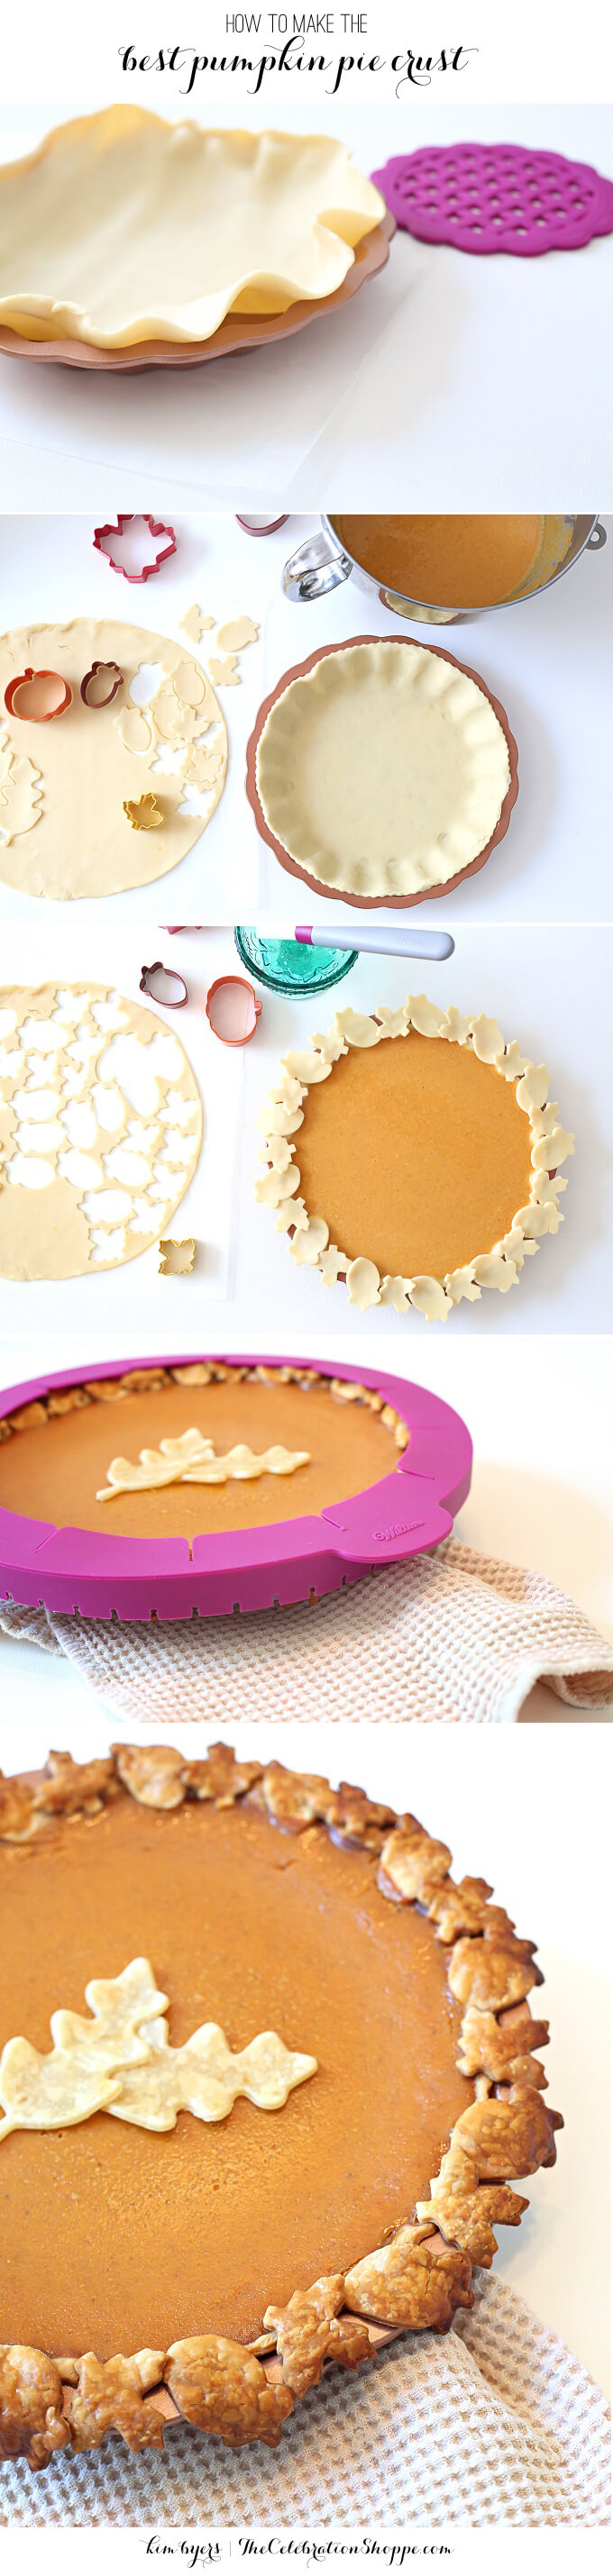 pumpkin pie crust